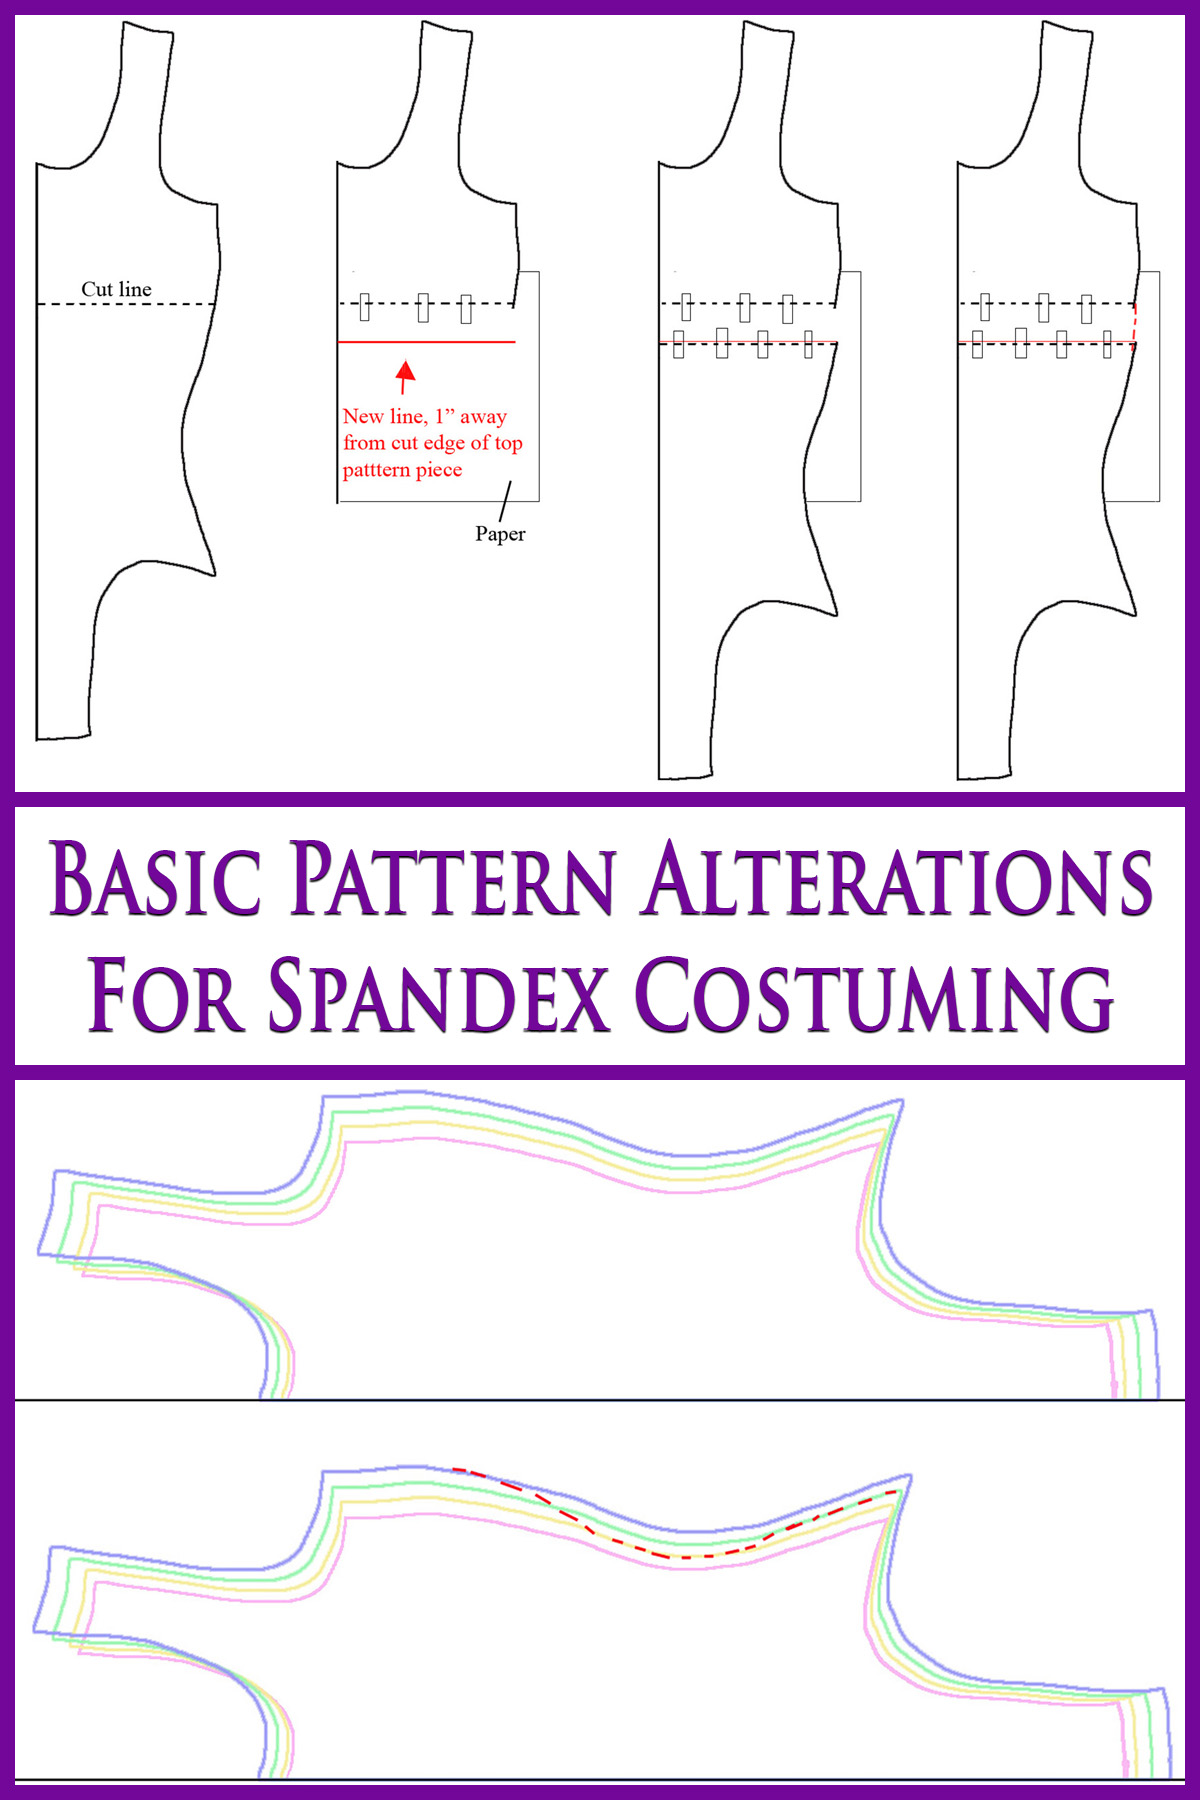 Hand drawn diagrams show various aspects of pattern alteration, with text that says Basic Pattern Alterations for Spandex Costuming.